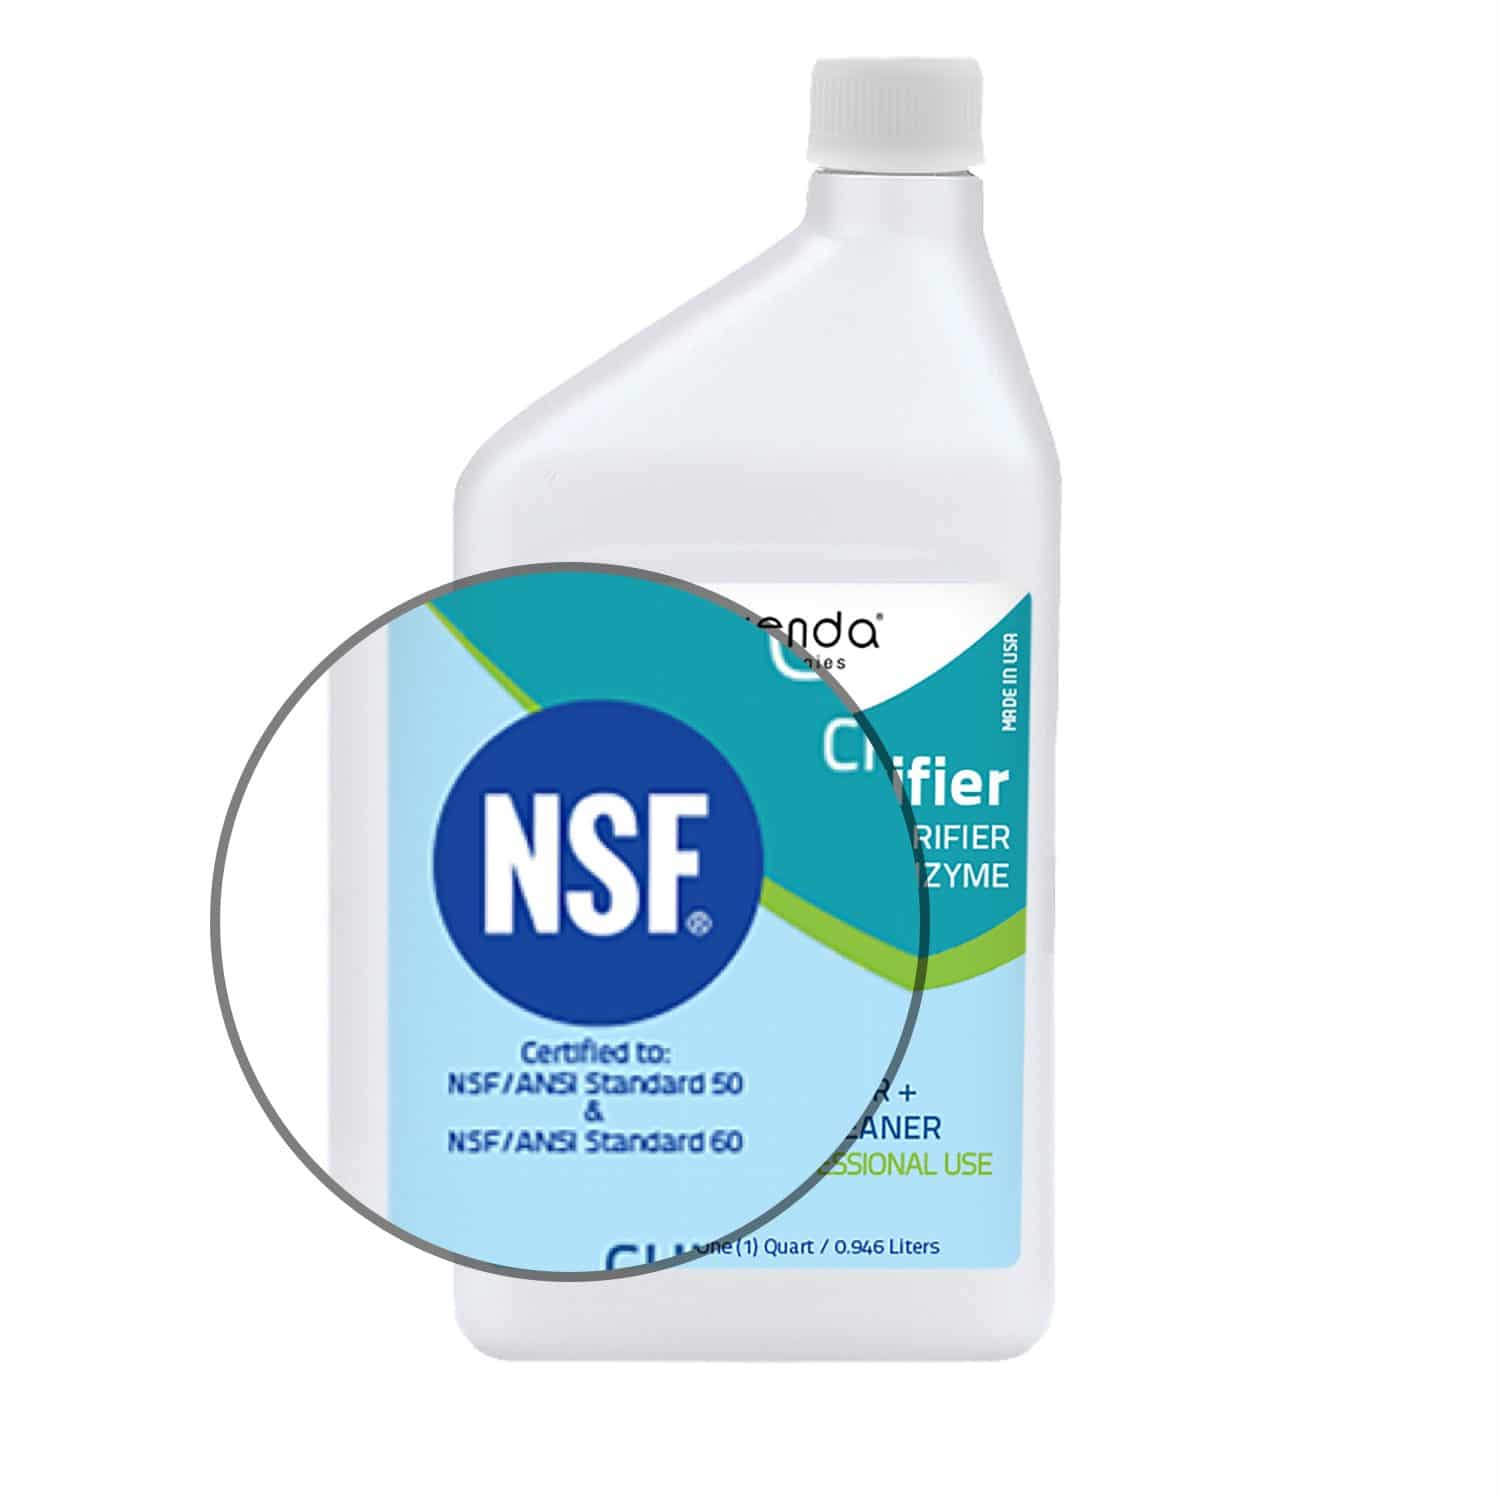 CE-clarifier, orenda clarifier, best pool clarifier, natural pool clarifier, NSF pool clarifier, NSF certified, natural pool chemical